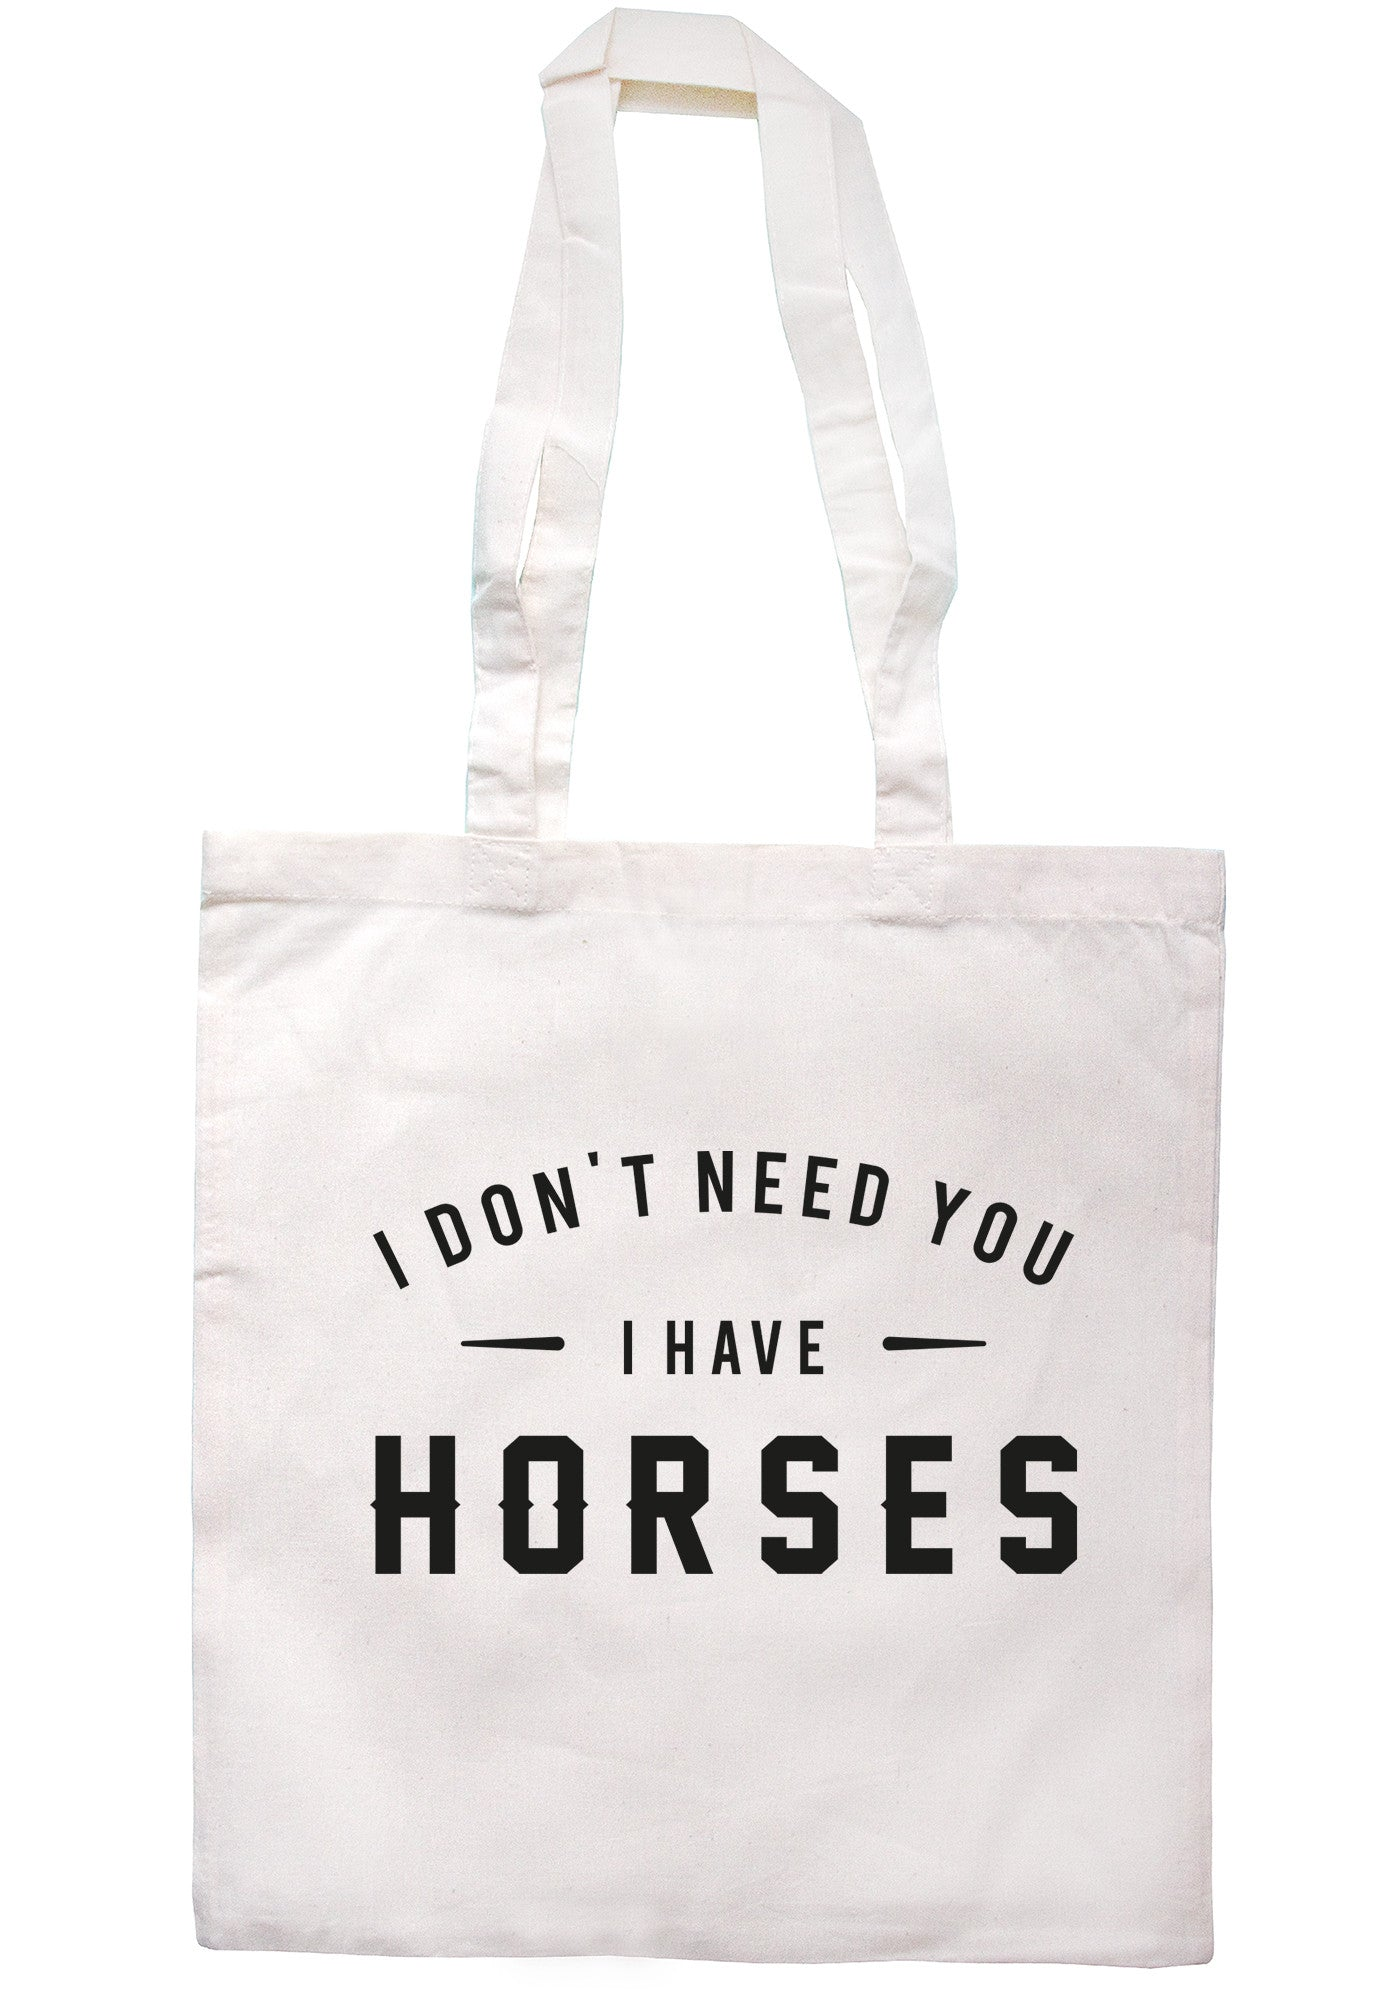 I Don't Need You I Have Horses Tote Bag TB0605 - Illustrated Identity Ltd.